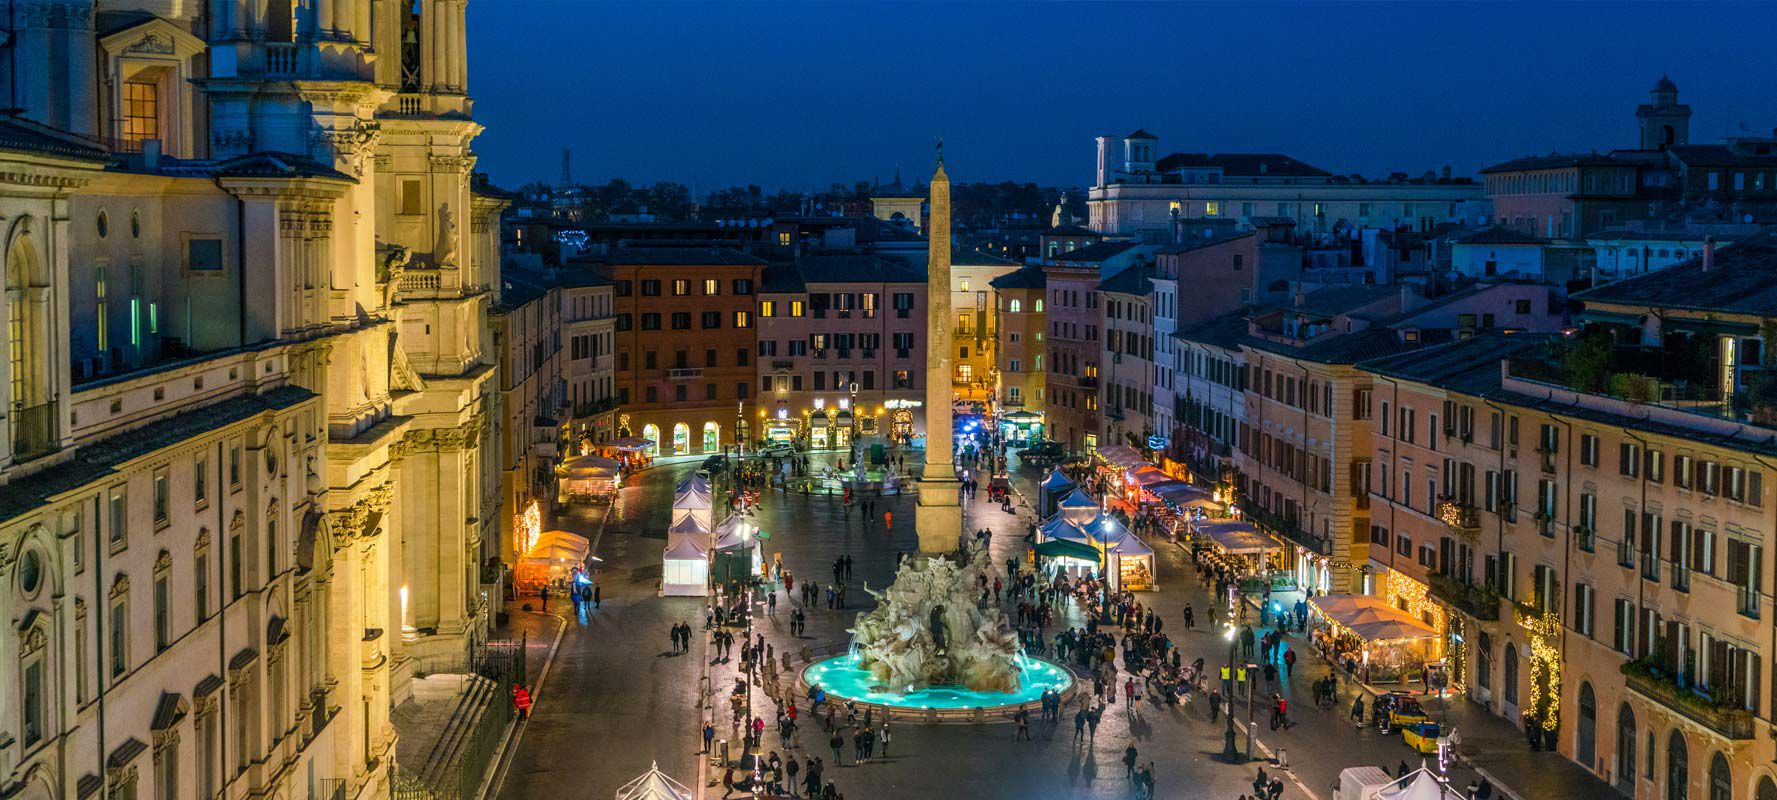 Christmas Market in Rome